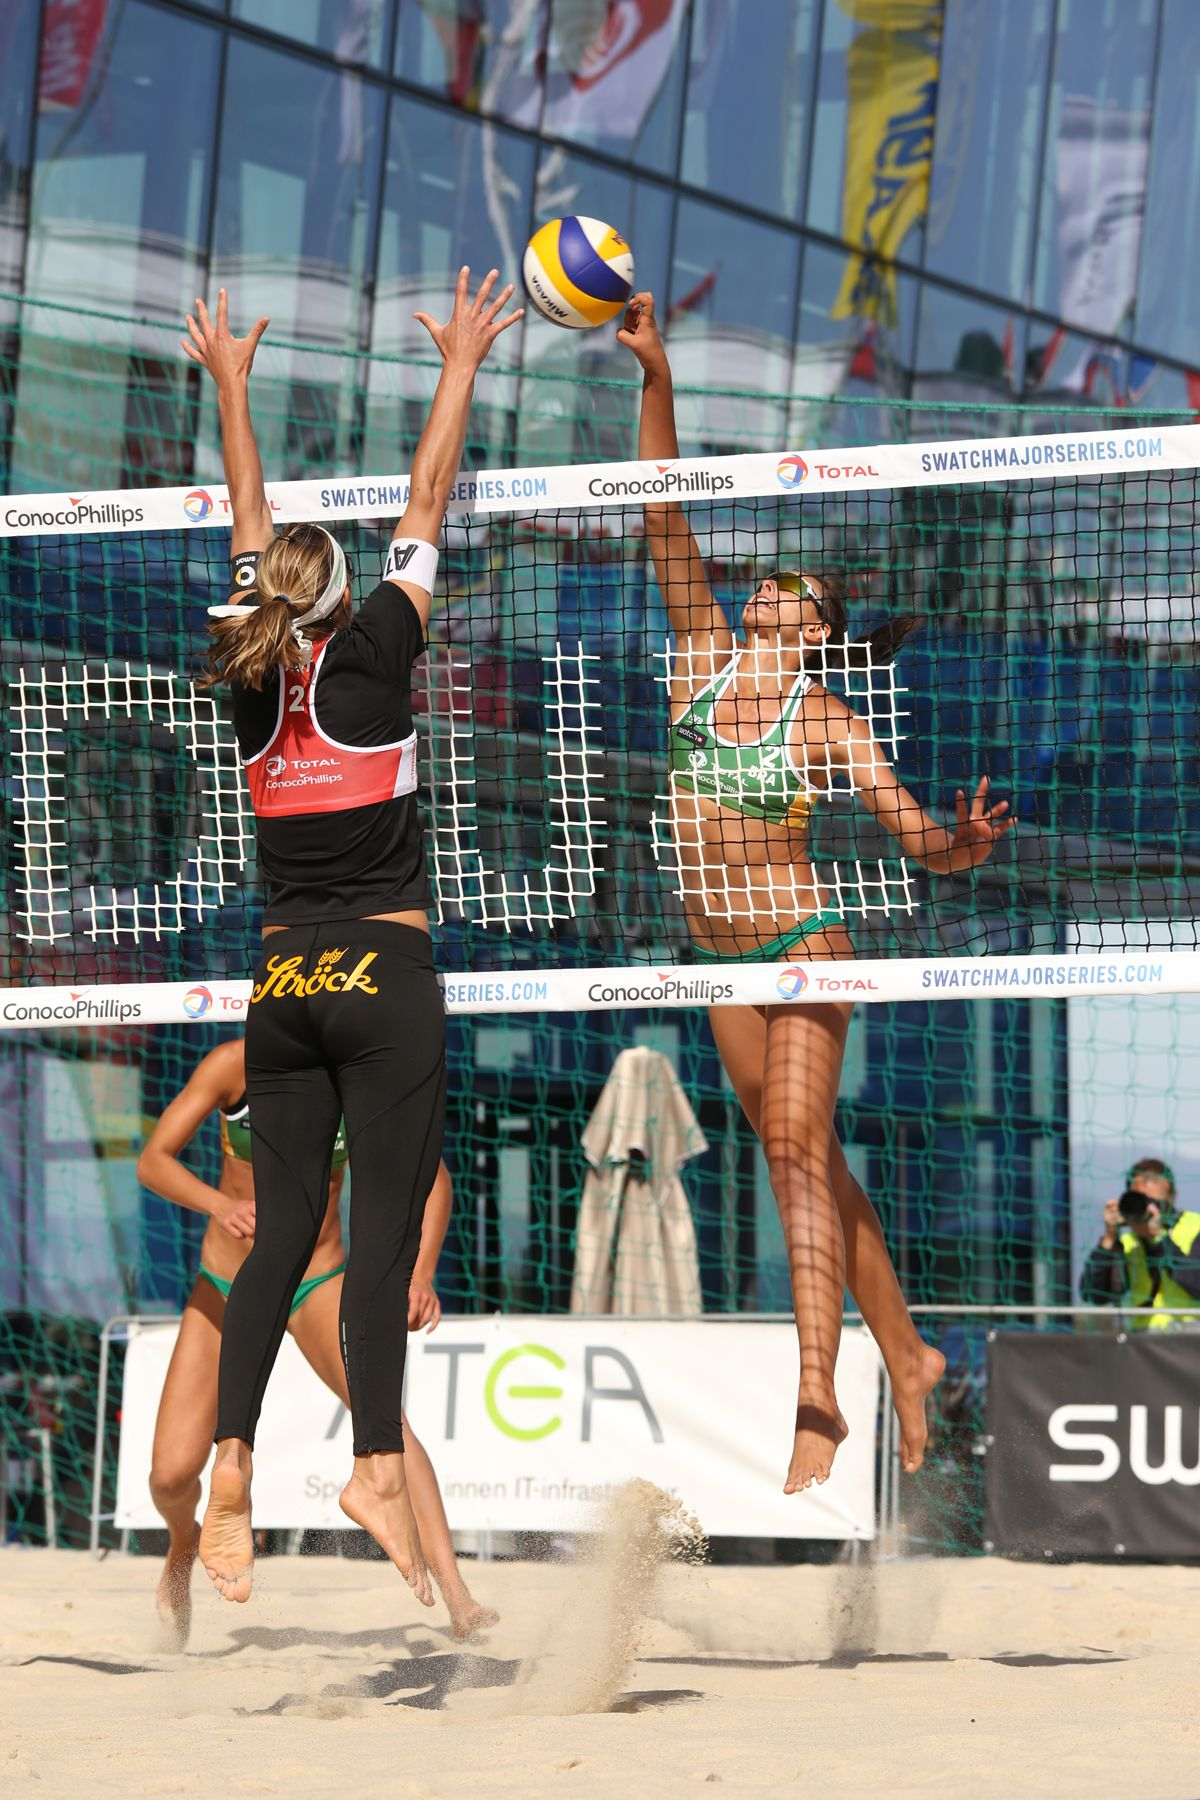 SWATCH Beach Volleyball Major Series FIVB, Stavanger, Norway 2015.